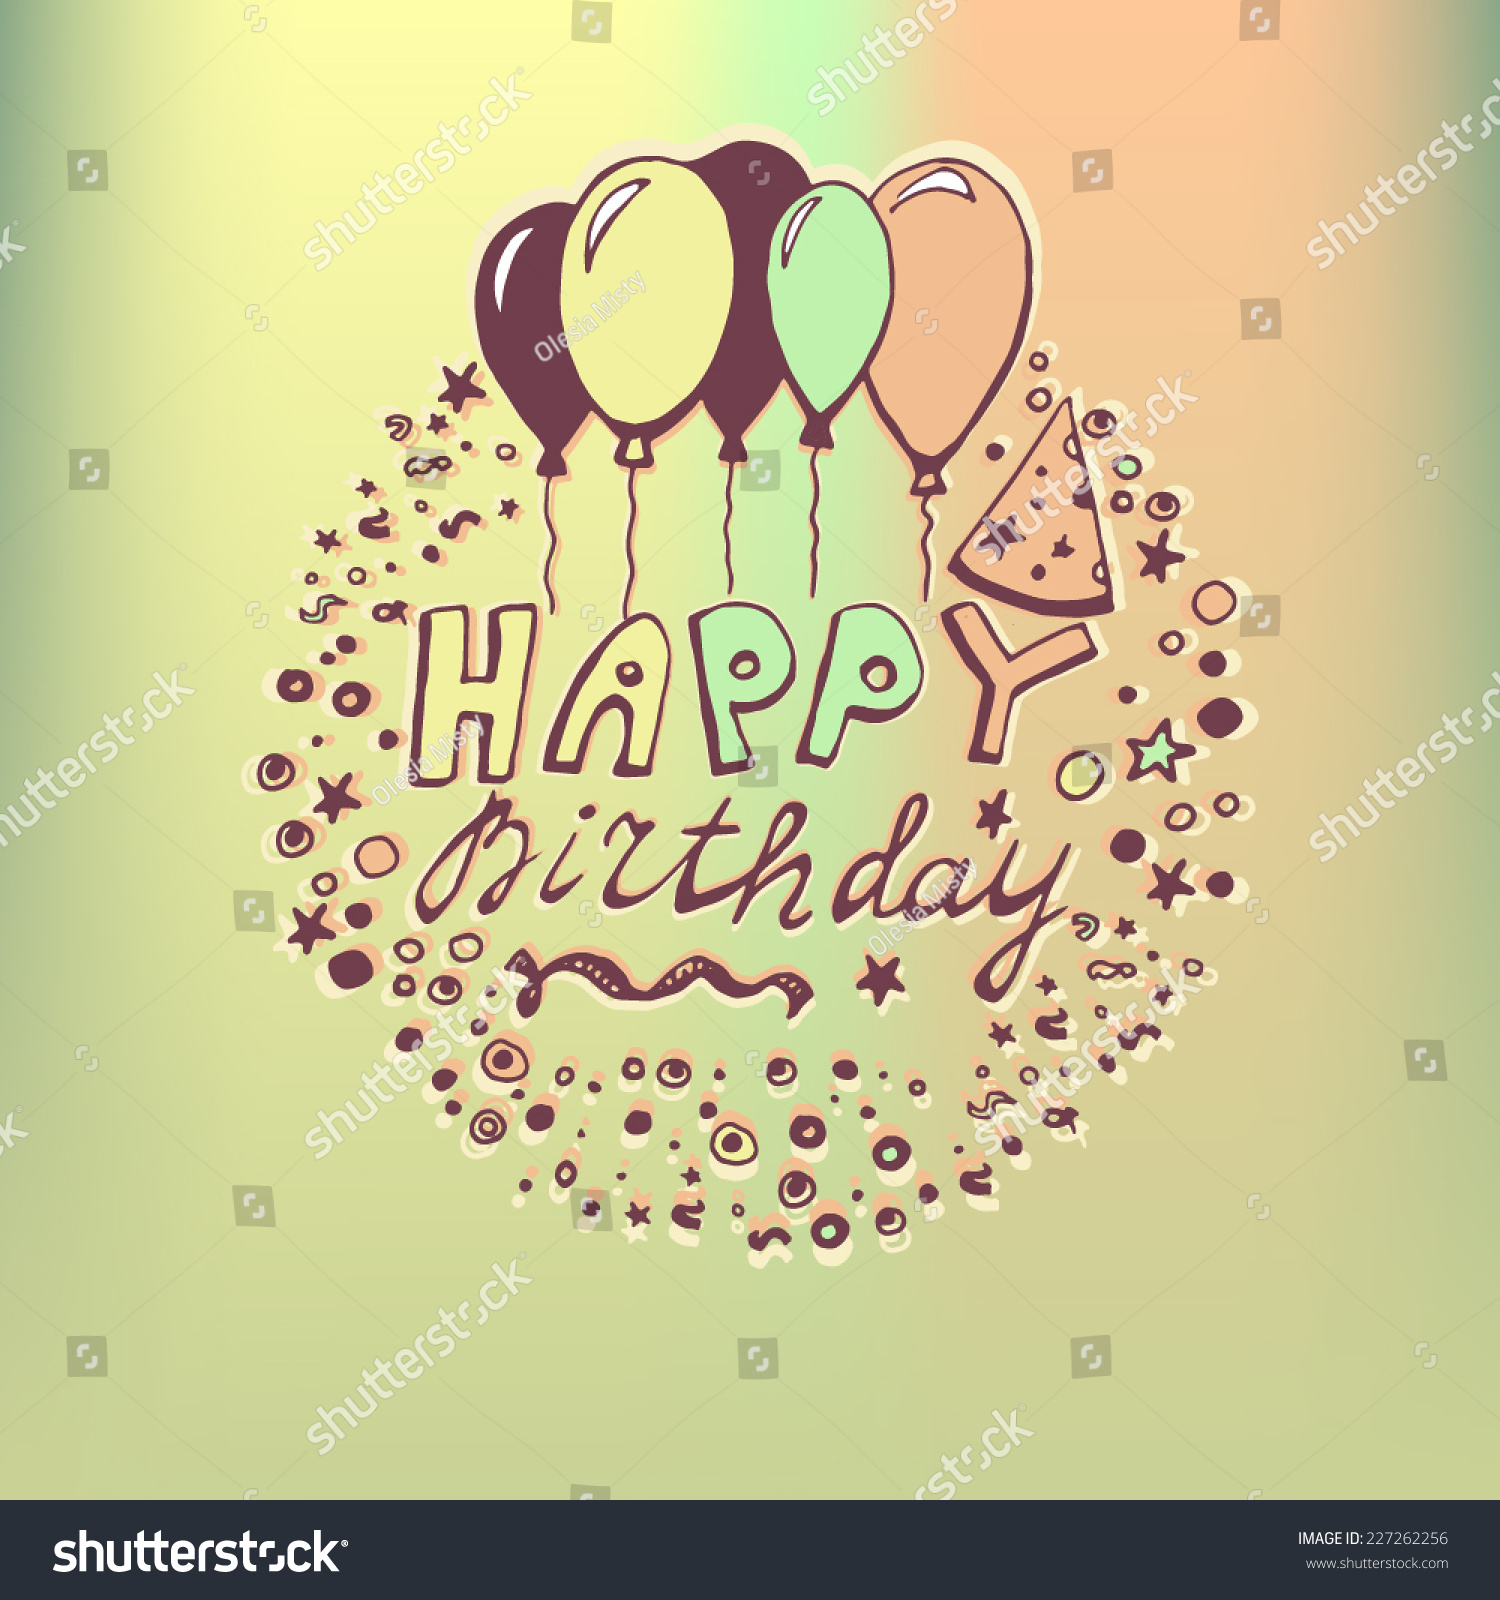 Hand Drawn Doodle Birthday Card Colorful Vector 227262256 – Doodle Birthday Card